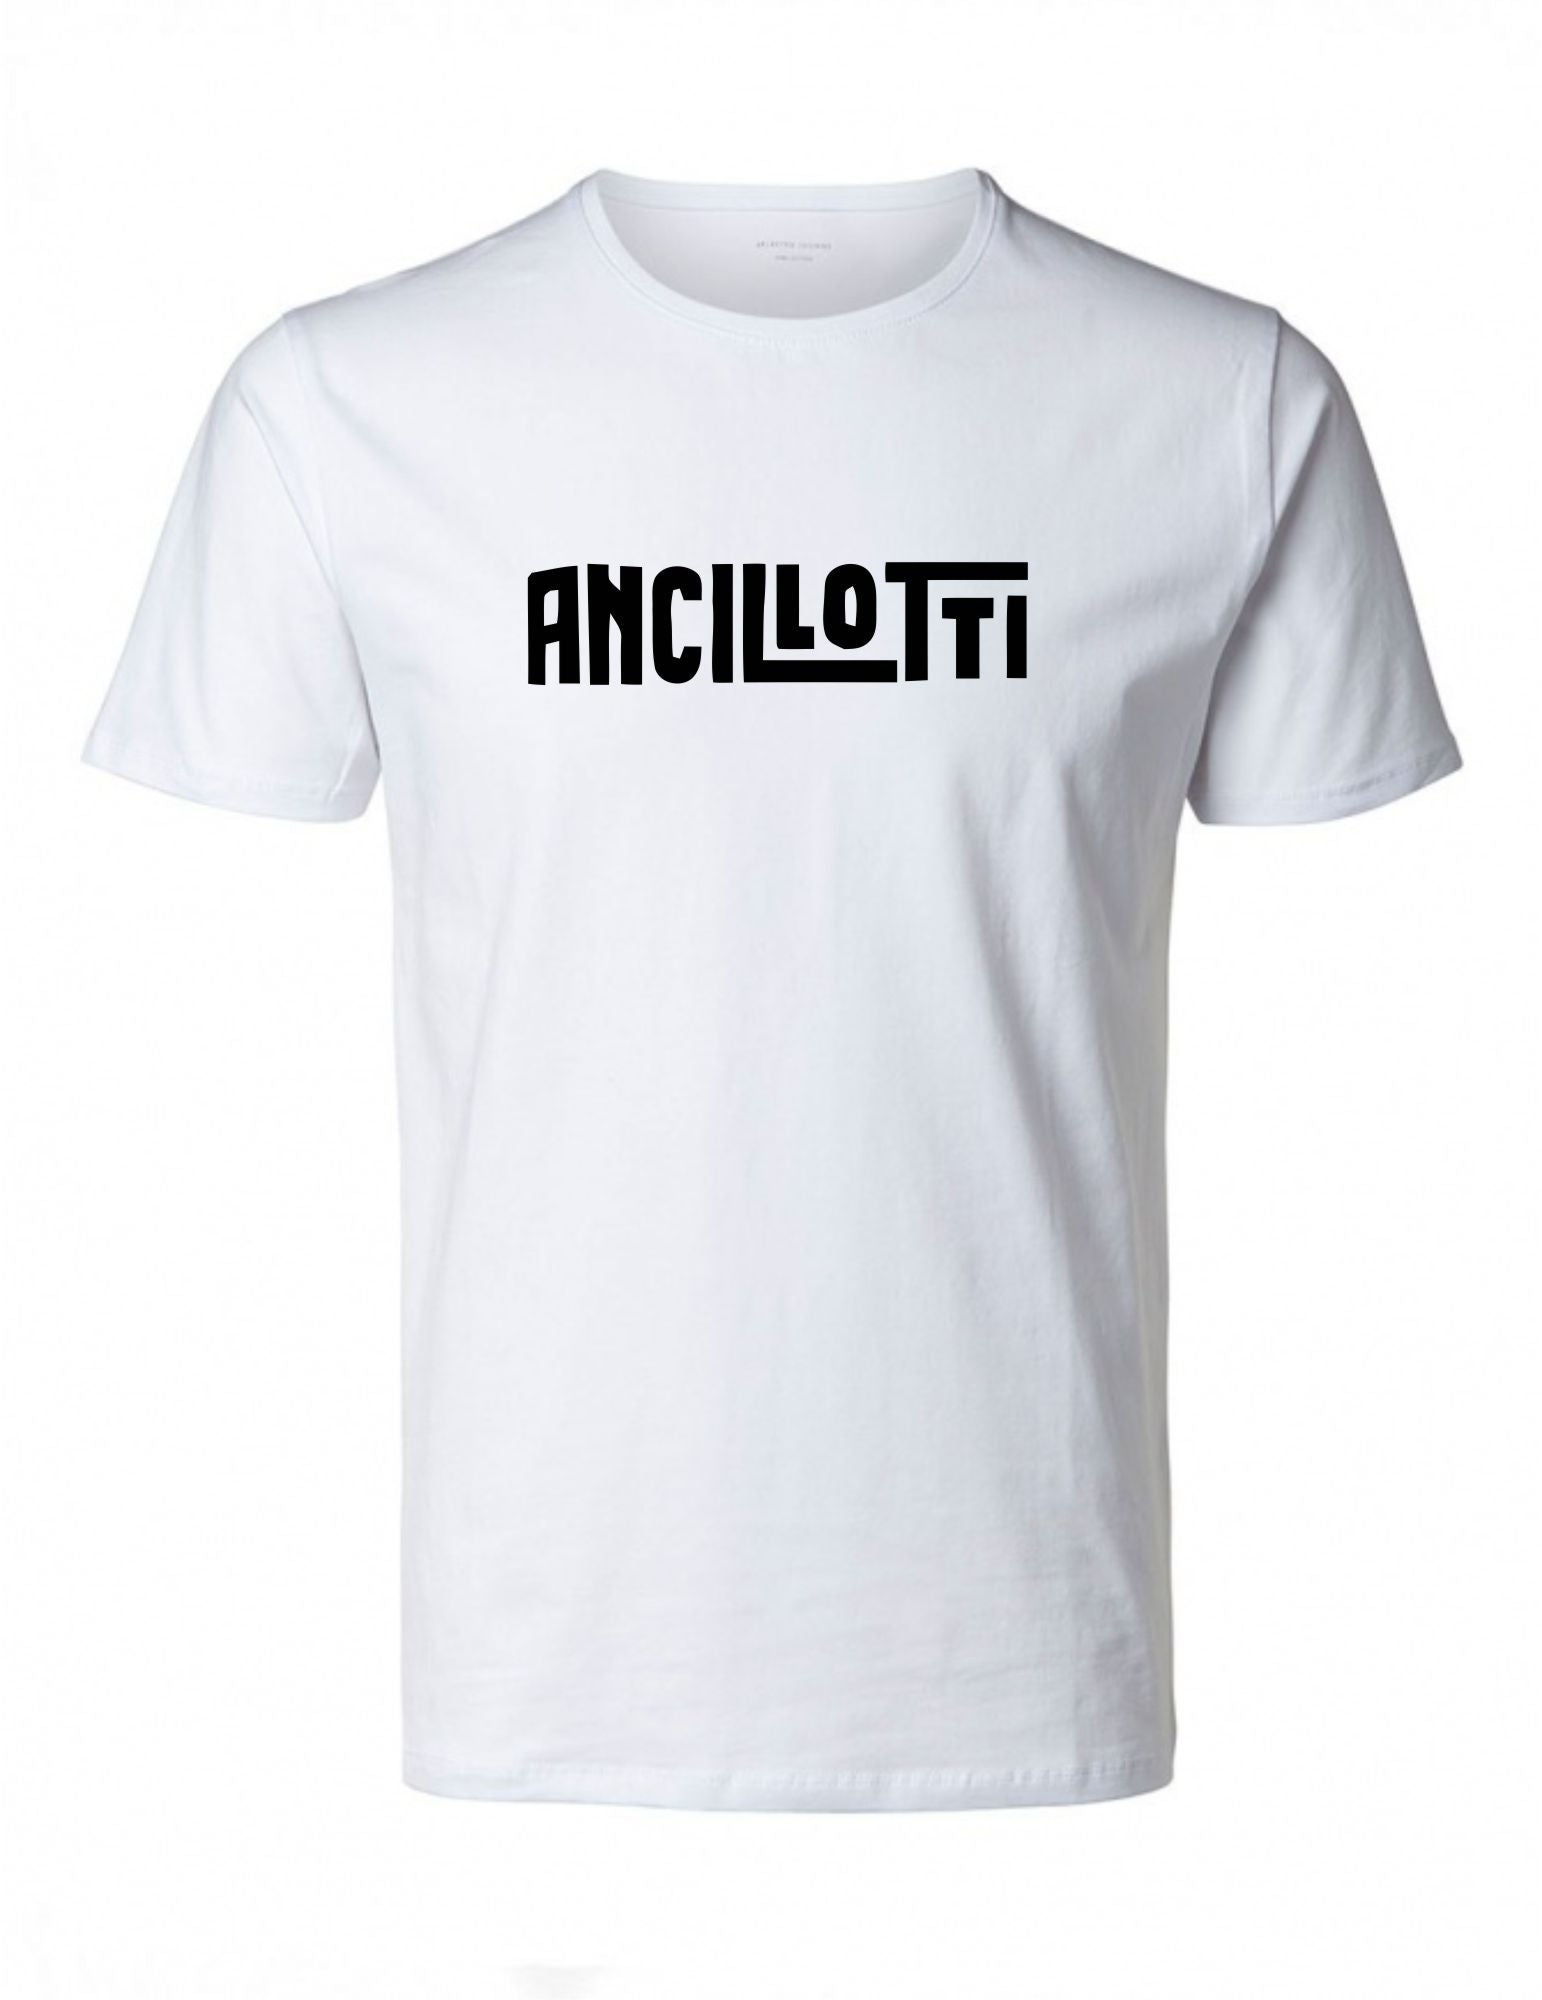 Ancillotti 2 T-Shirt